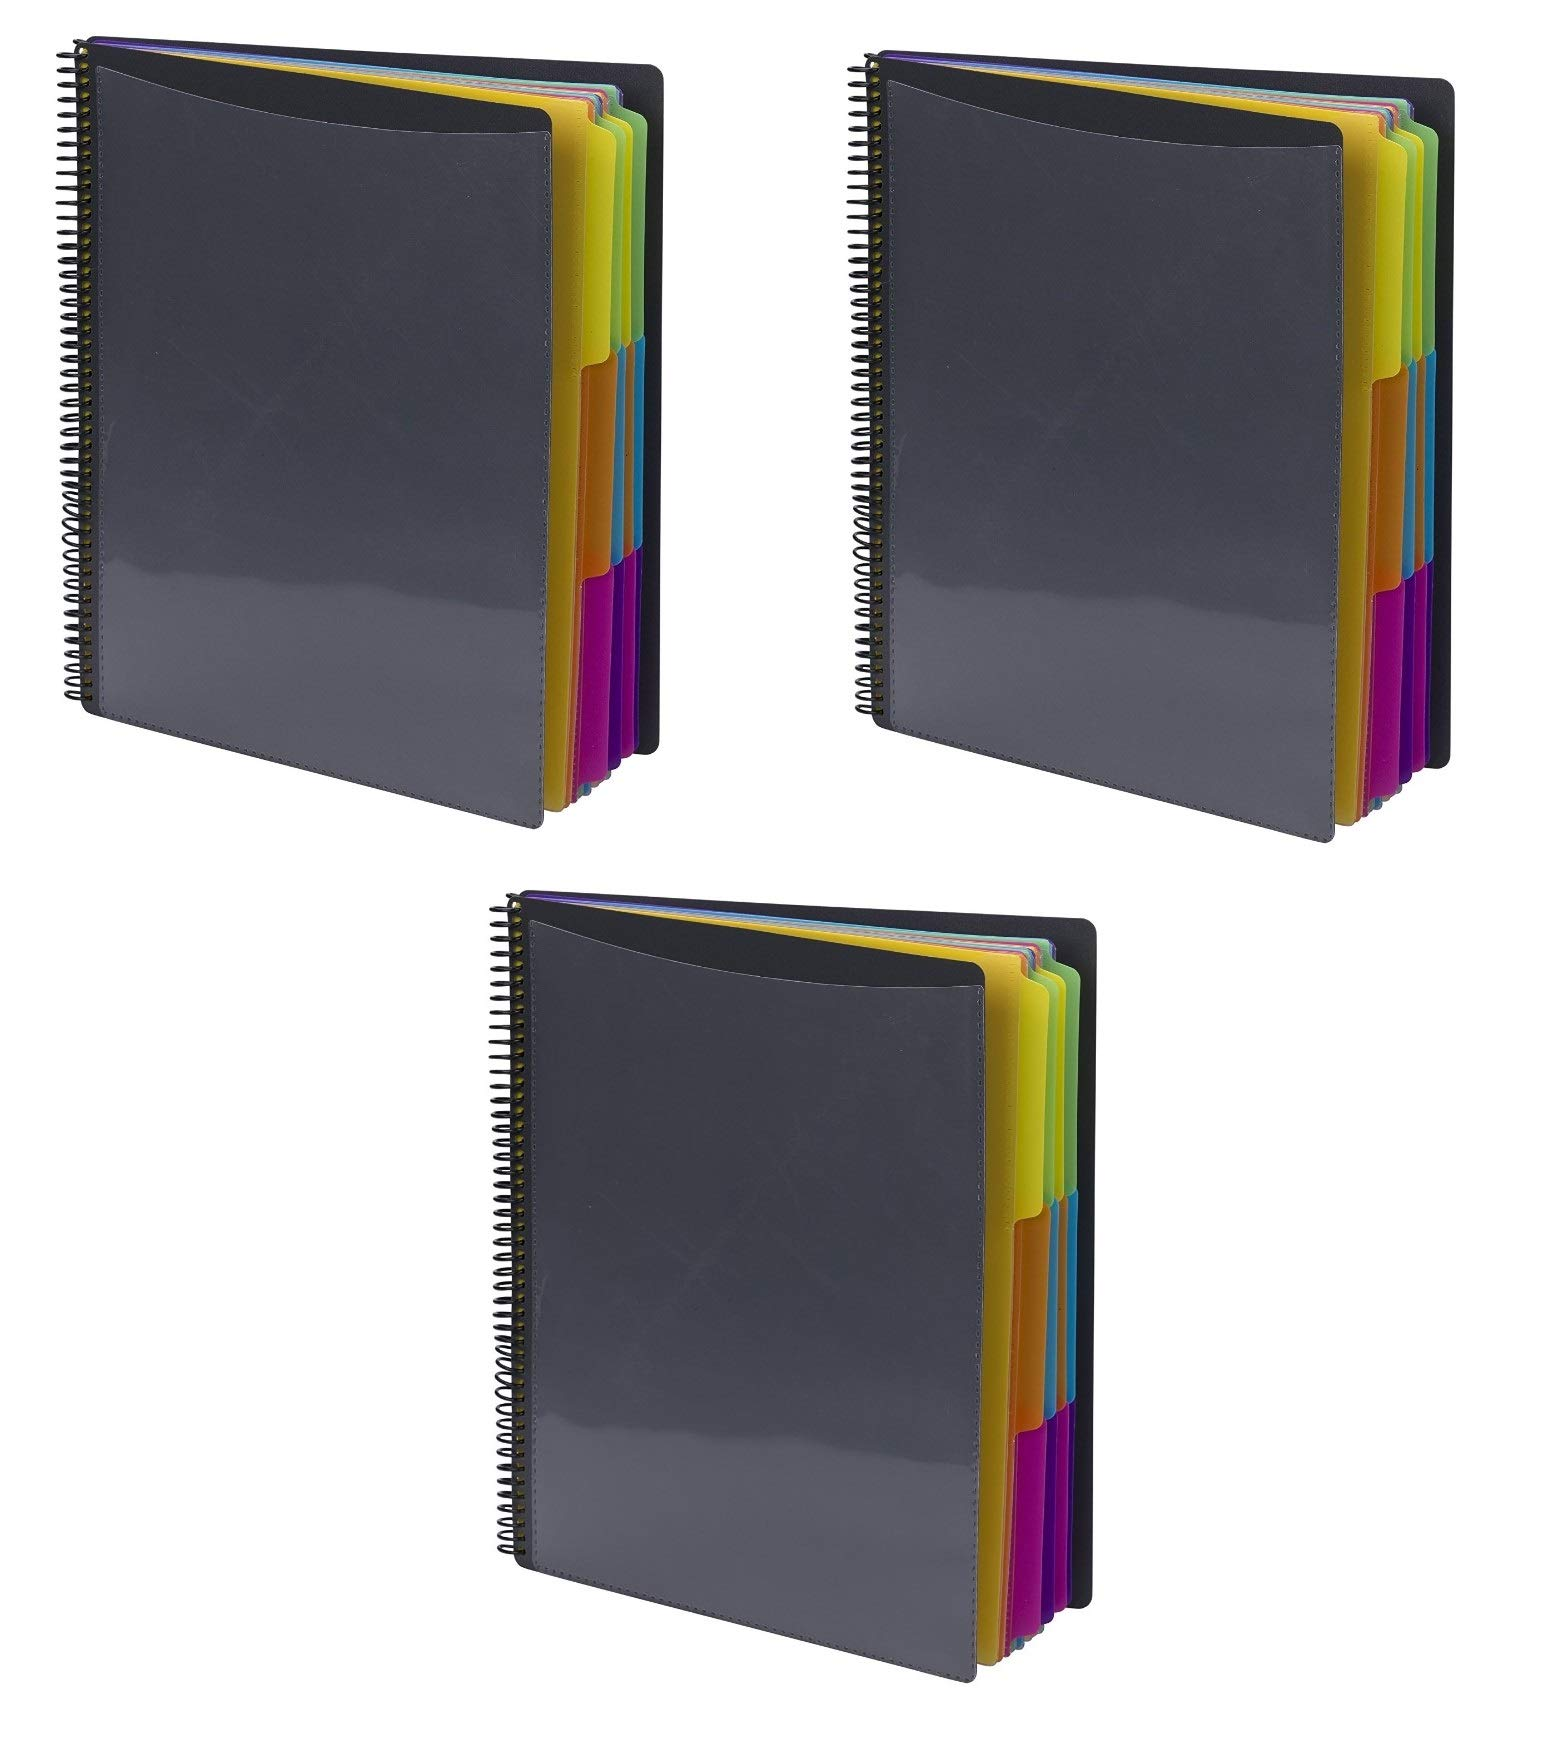 Smead 24 Pocket Poly Project Organizer, Letter Size, 1/3-Cut tab, Gray with Bright Colors, 3 Pack (89206) by Smead